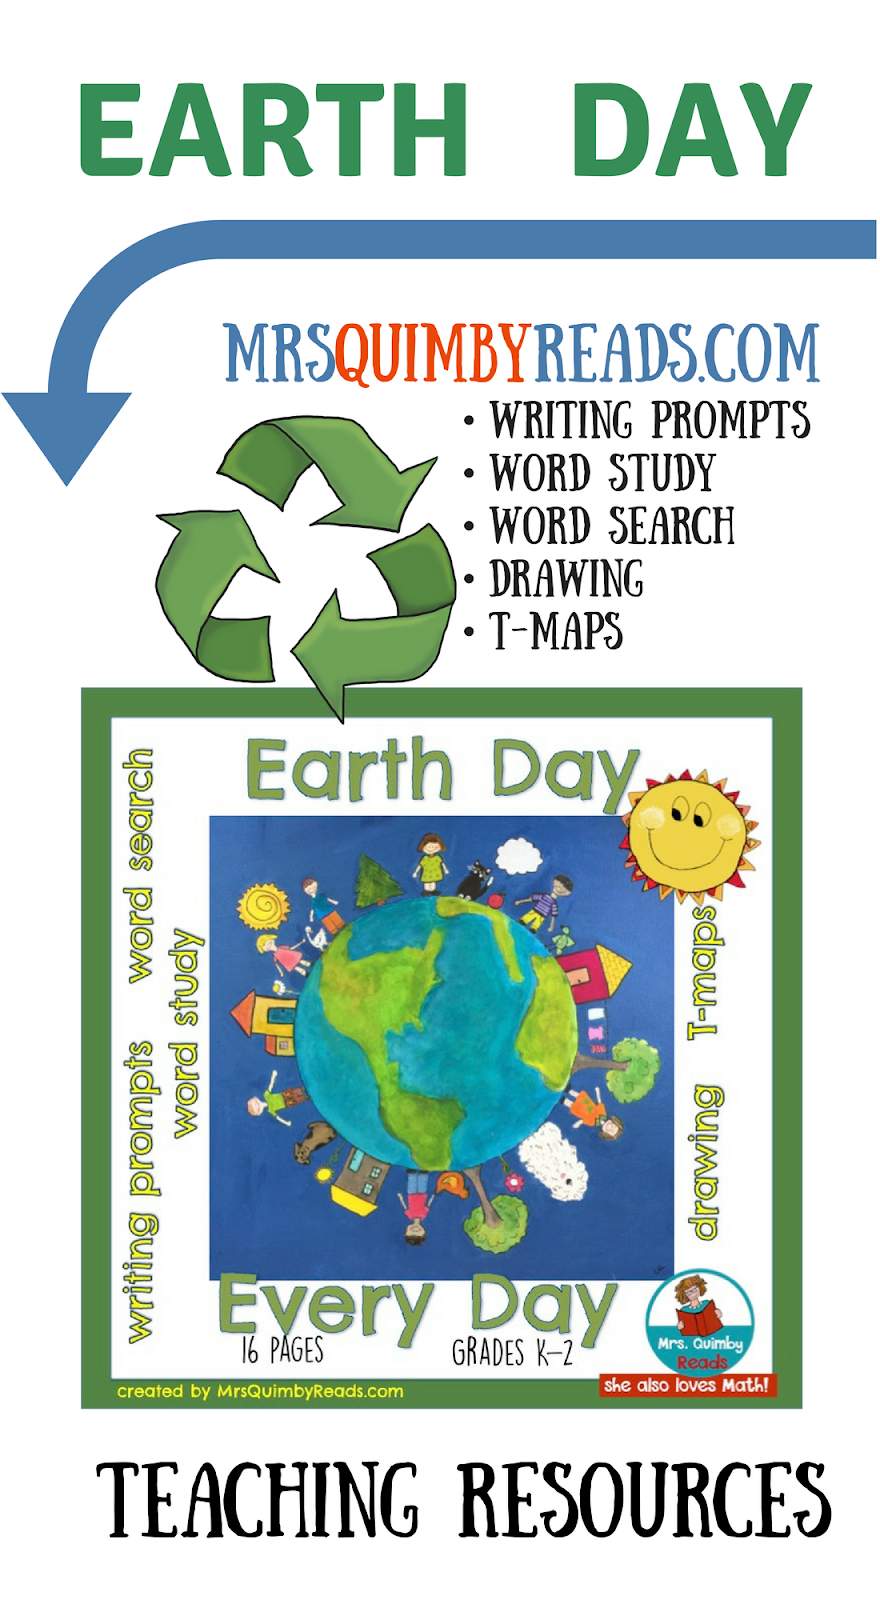 MrsQuimbyReads | Teaching Resources: 7 Earth Day Activities and ...